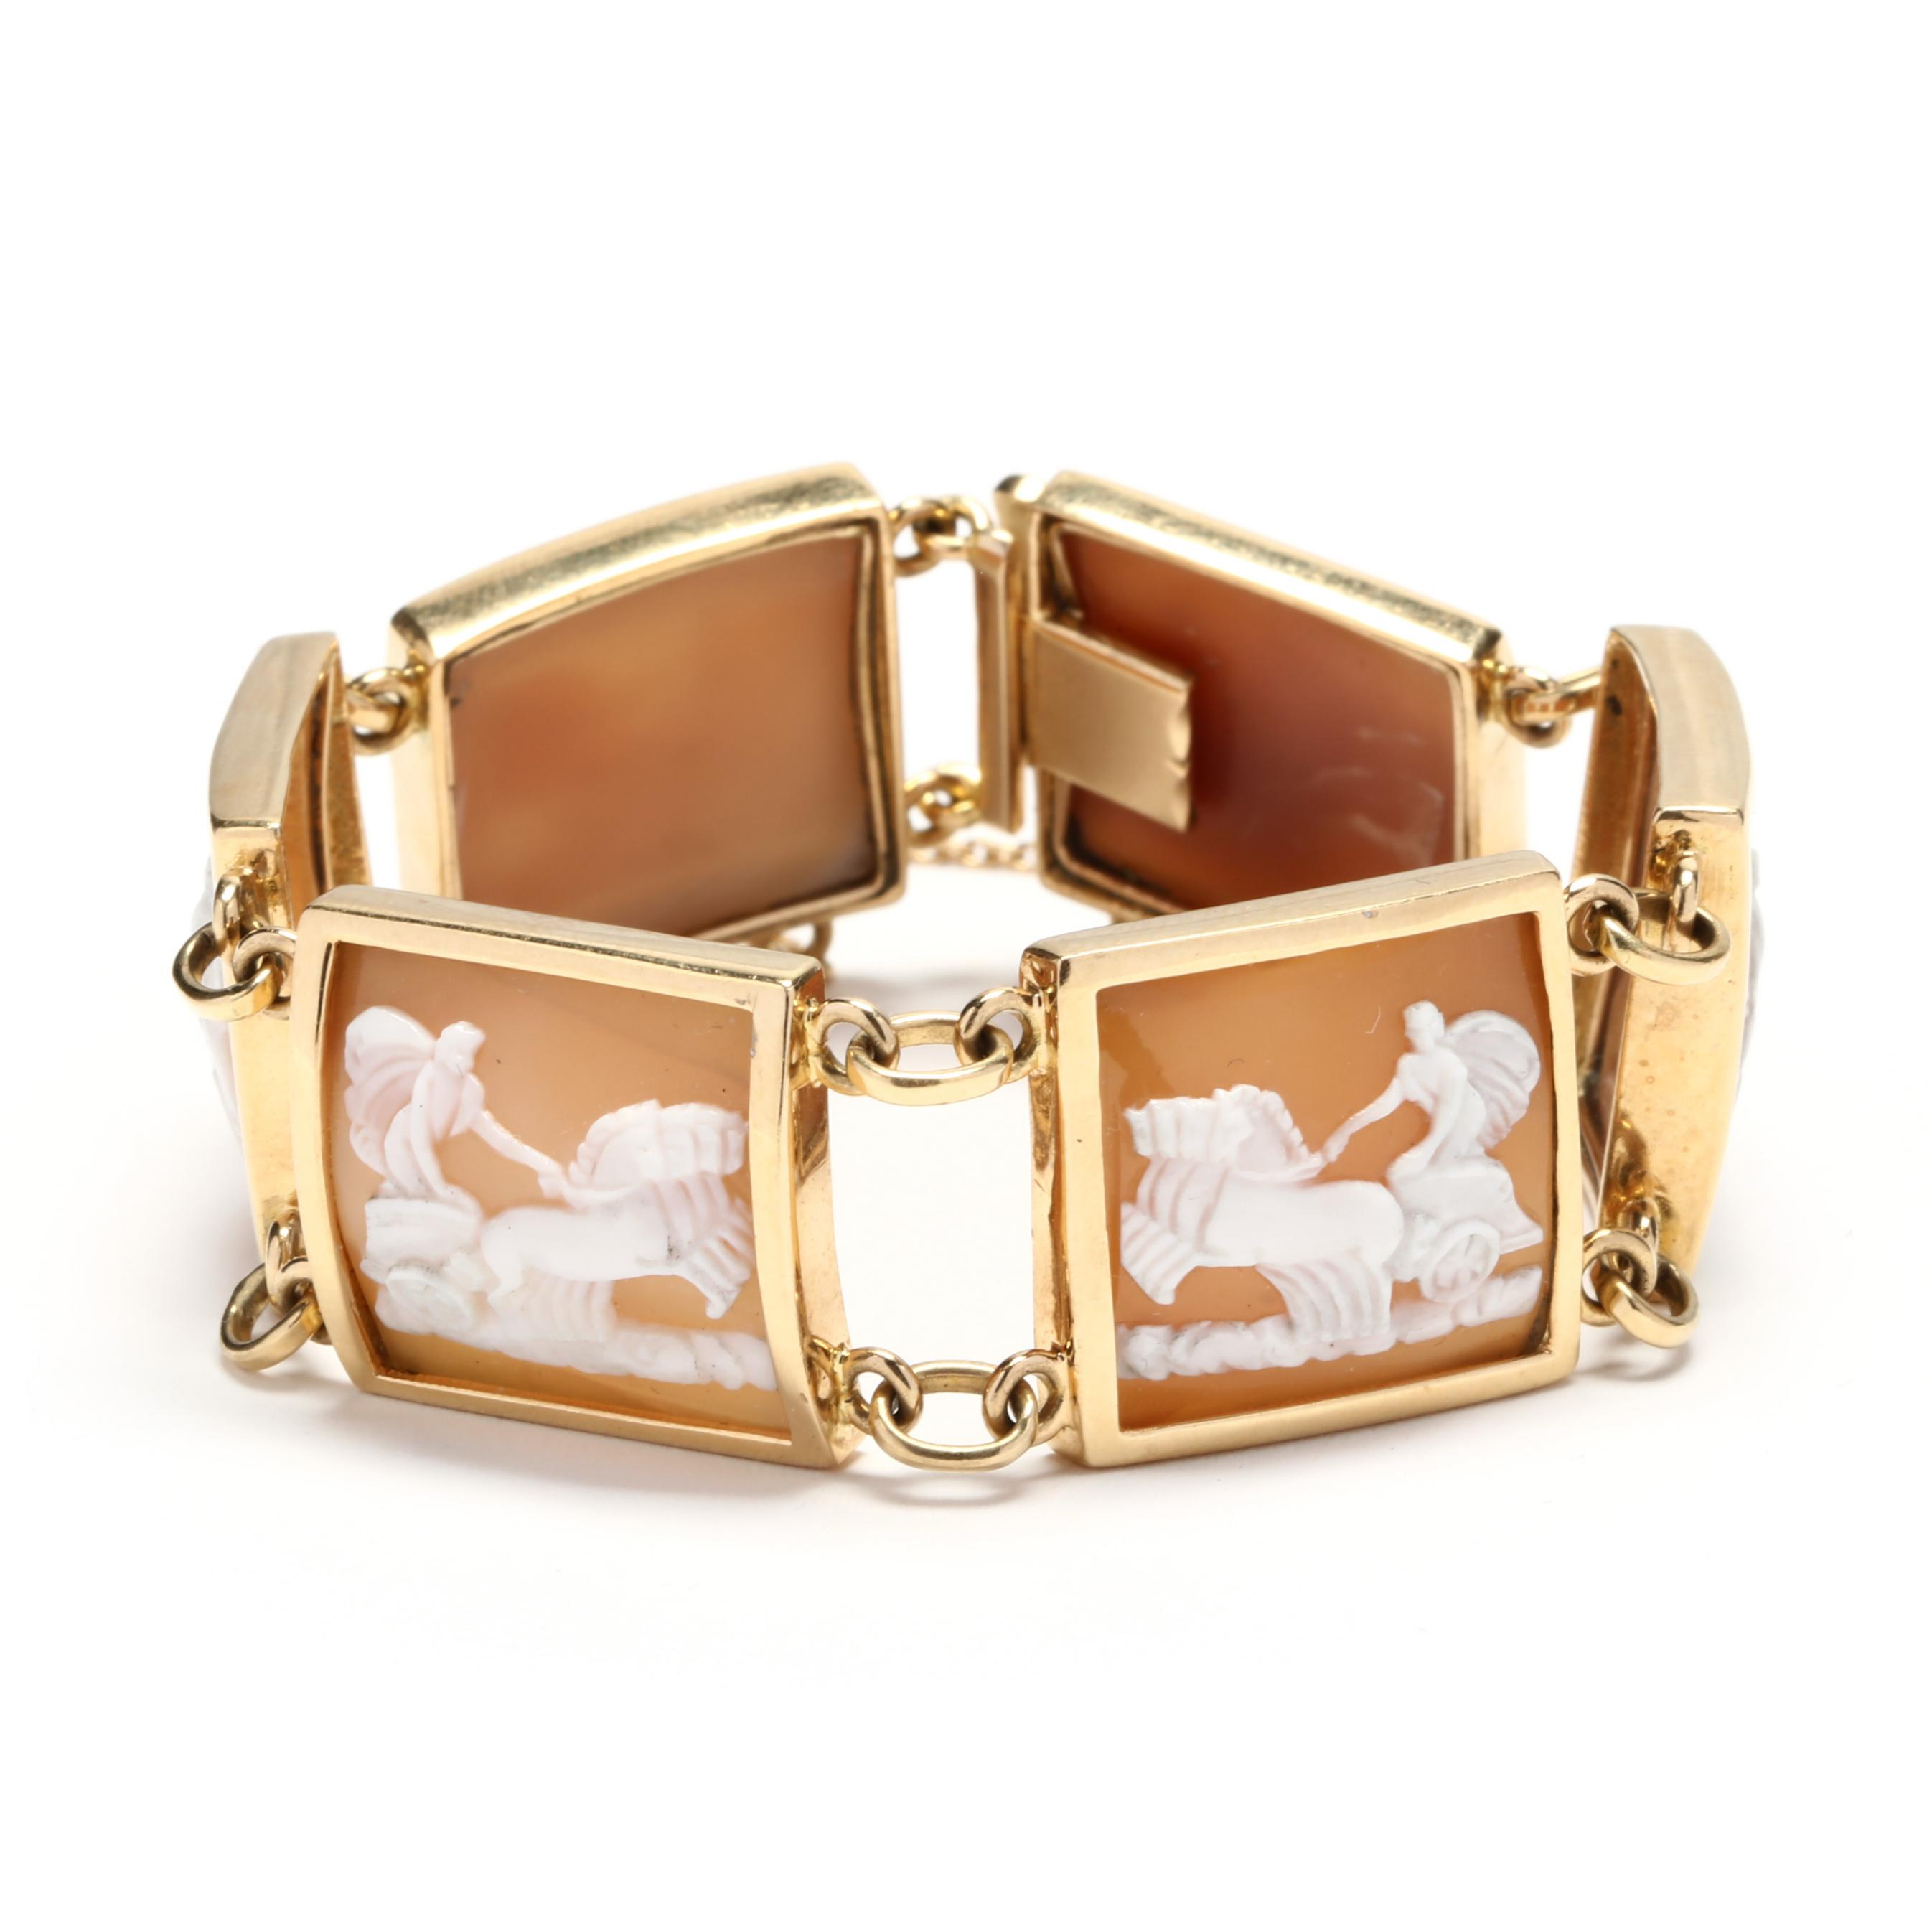 18kt-gold-and-cameo-bracelet-french